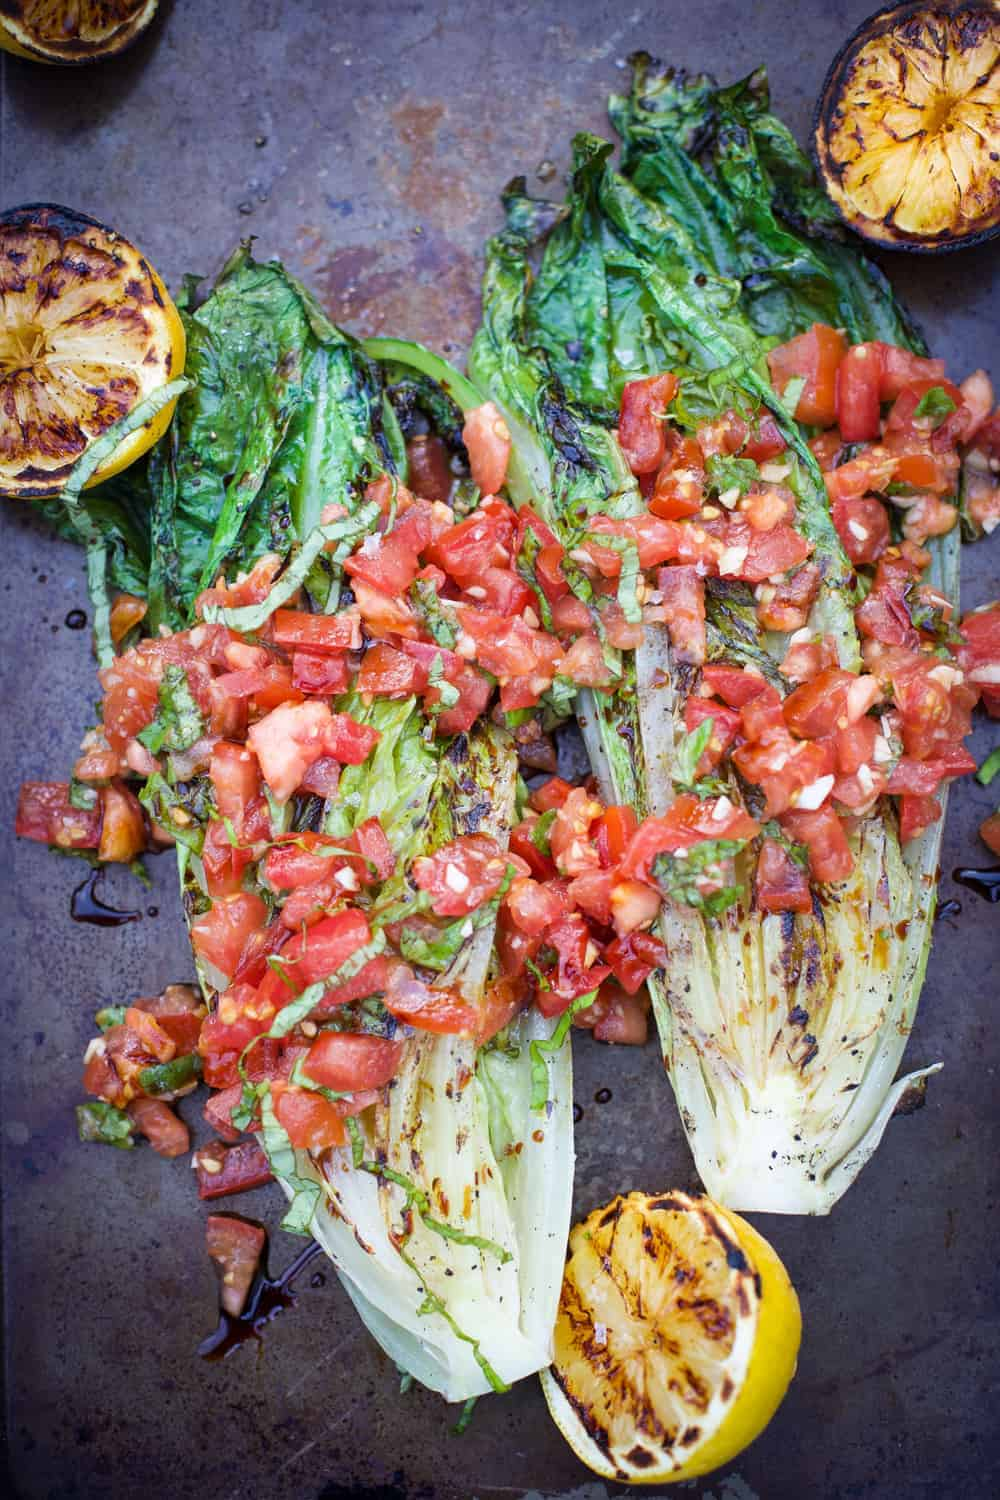 Grilled romaine with tomatoes and basil